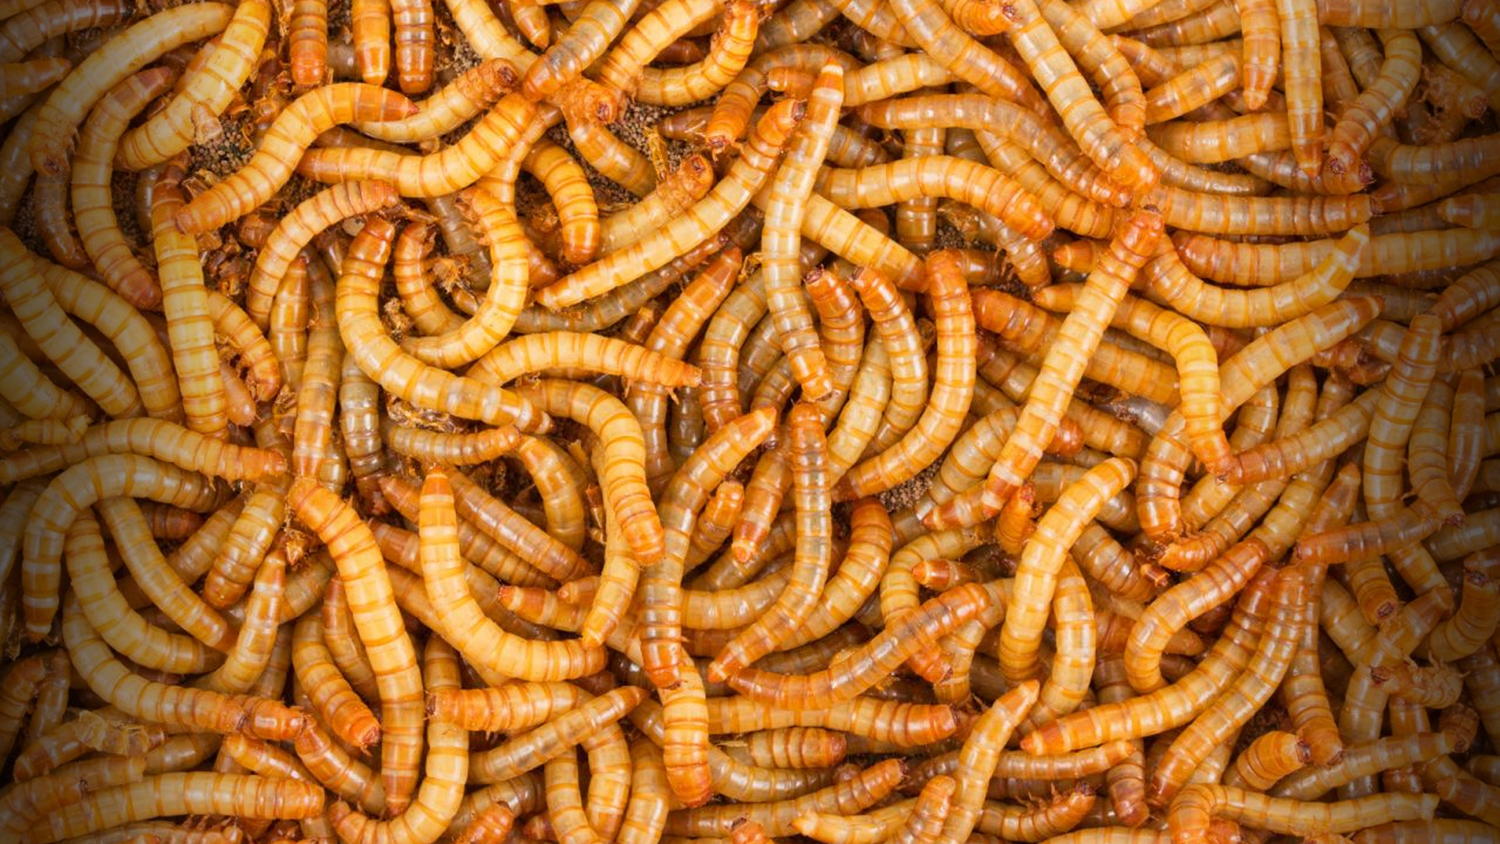 Meal Worms for fishing in Oregon